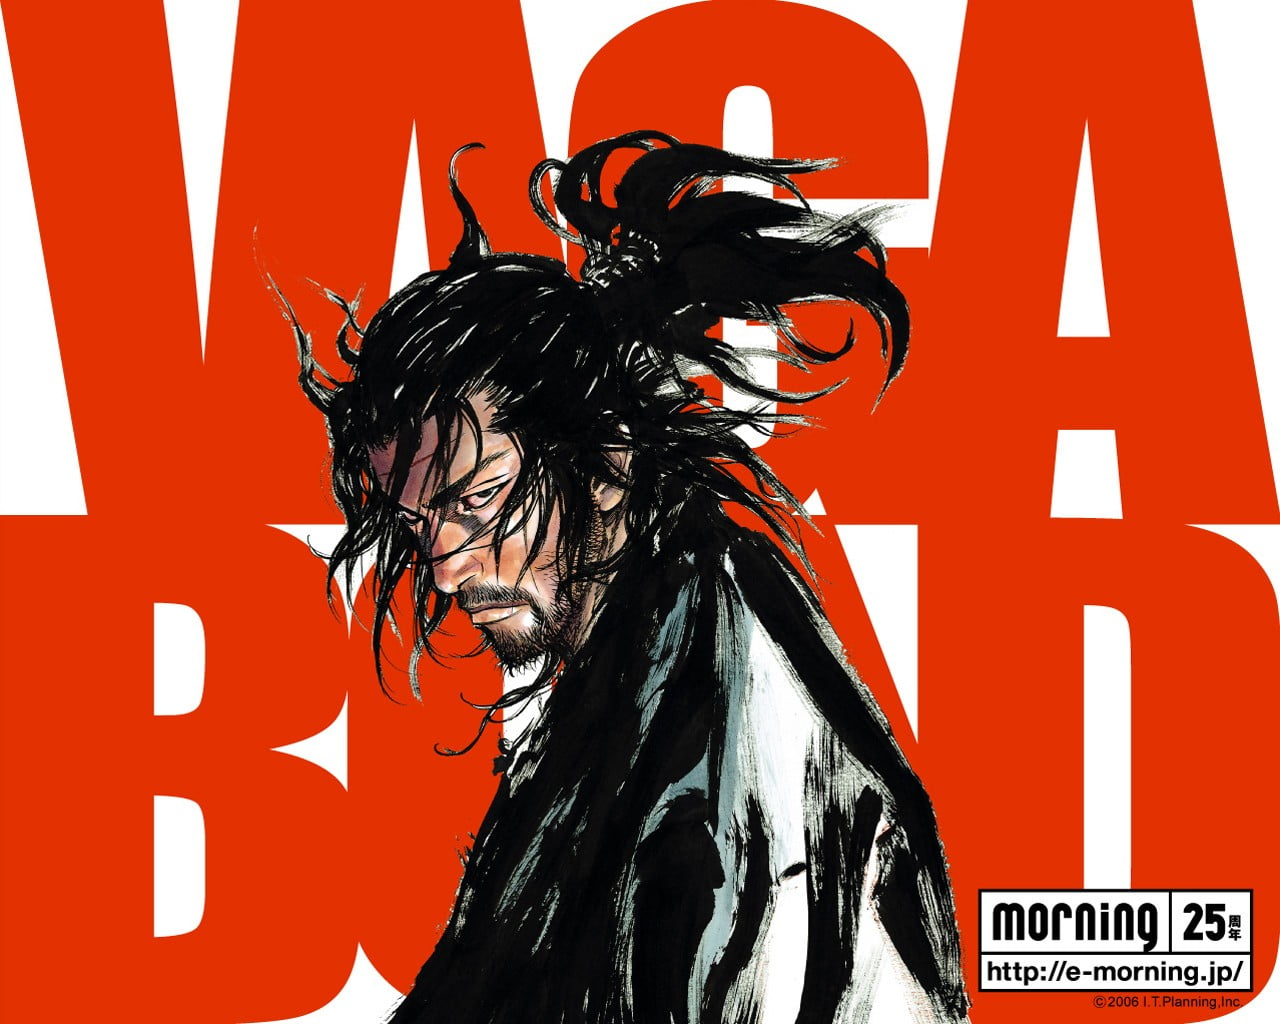 VAGABOND is one of THE MOST INFLUENTIAL MANGA and yet has never had an anime.